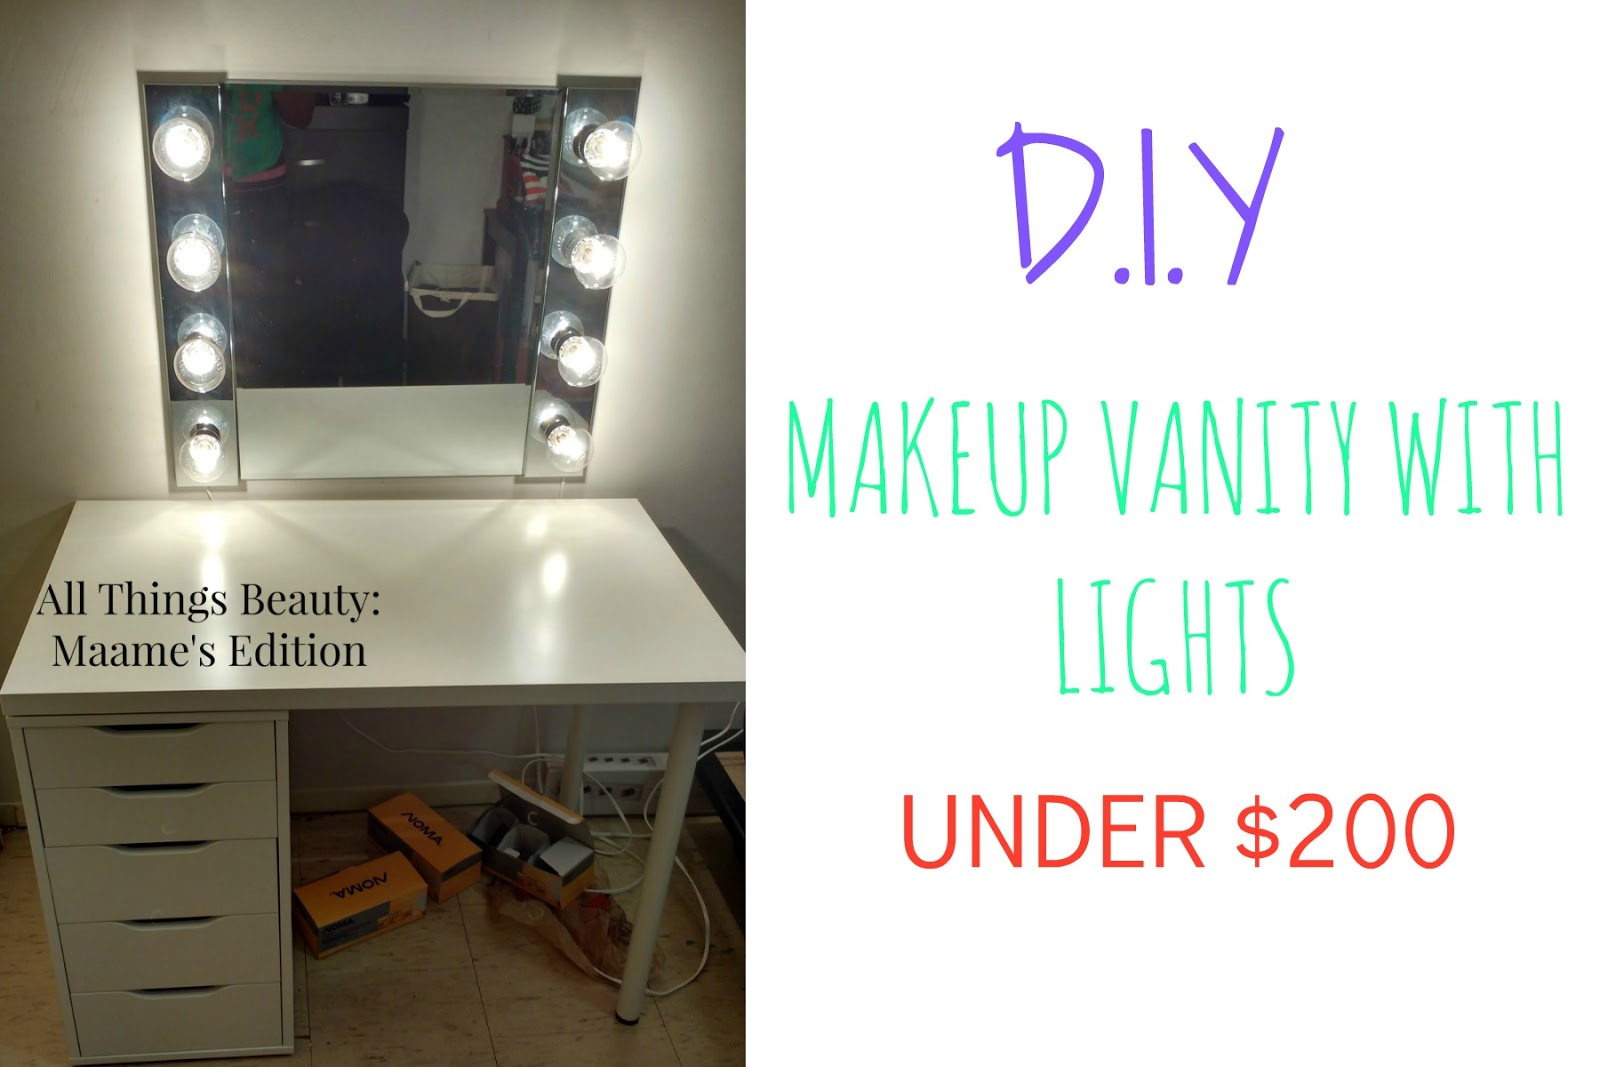 Etonnant MAKEUP STORAGE | DIY MAKEUP VANITY TABLE WITH LIGHTS FOR UNDER $200